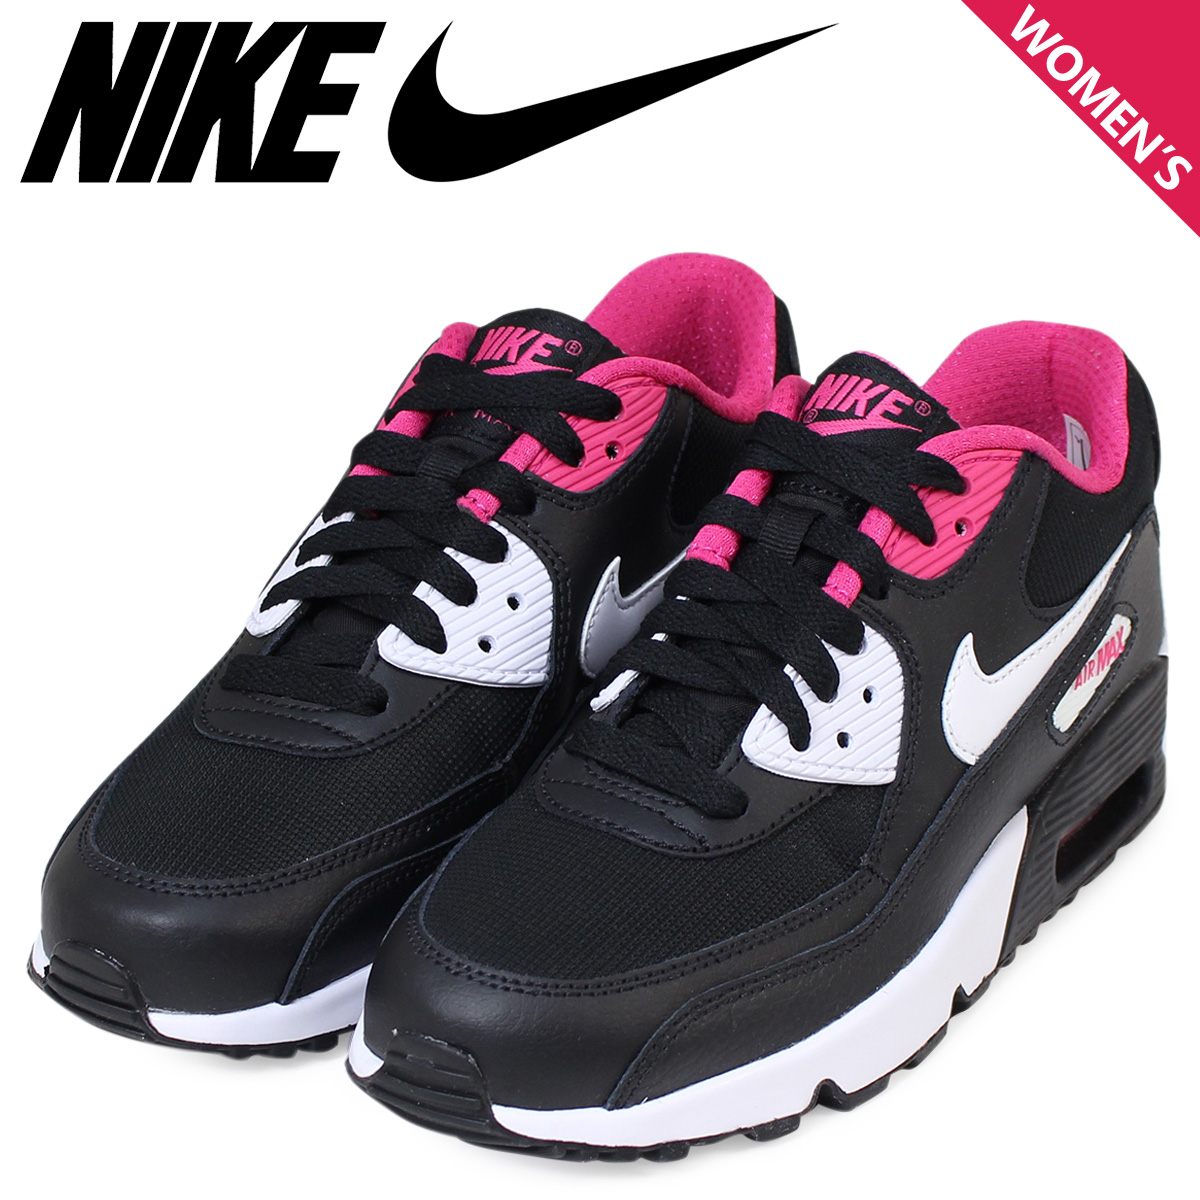 dd74c5ac40bbe Nike Air Max Womens NIKE sneakers AIR MAX 90 MESH GS Air Max 833340-002  shoes black  book product 11   26 days in stock new stock plan